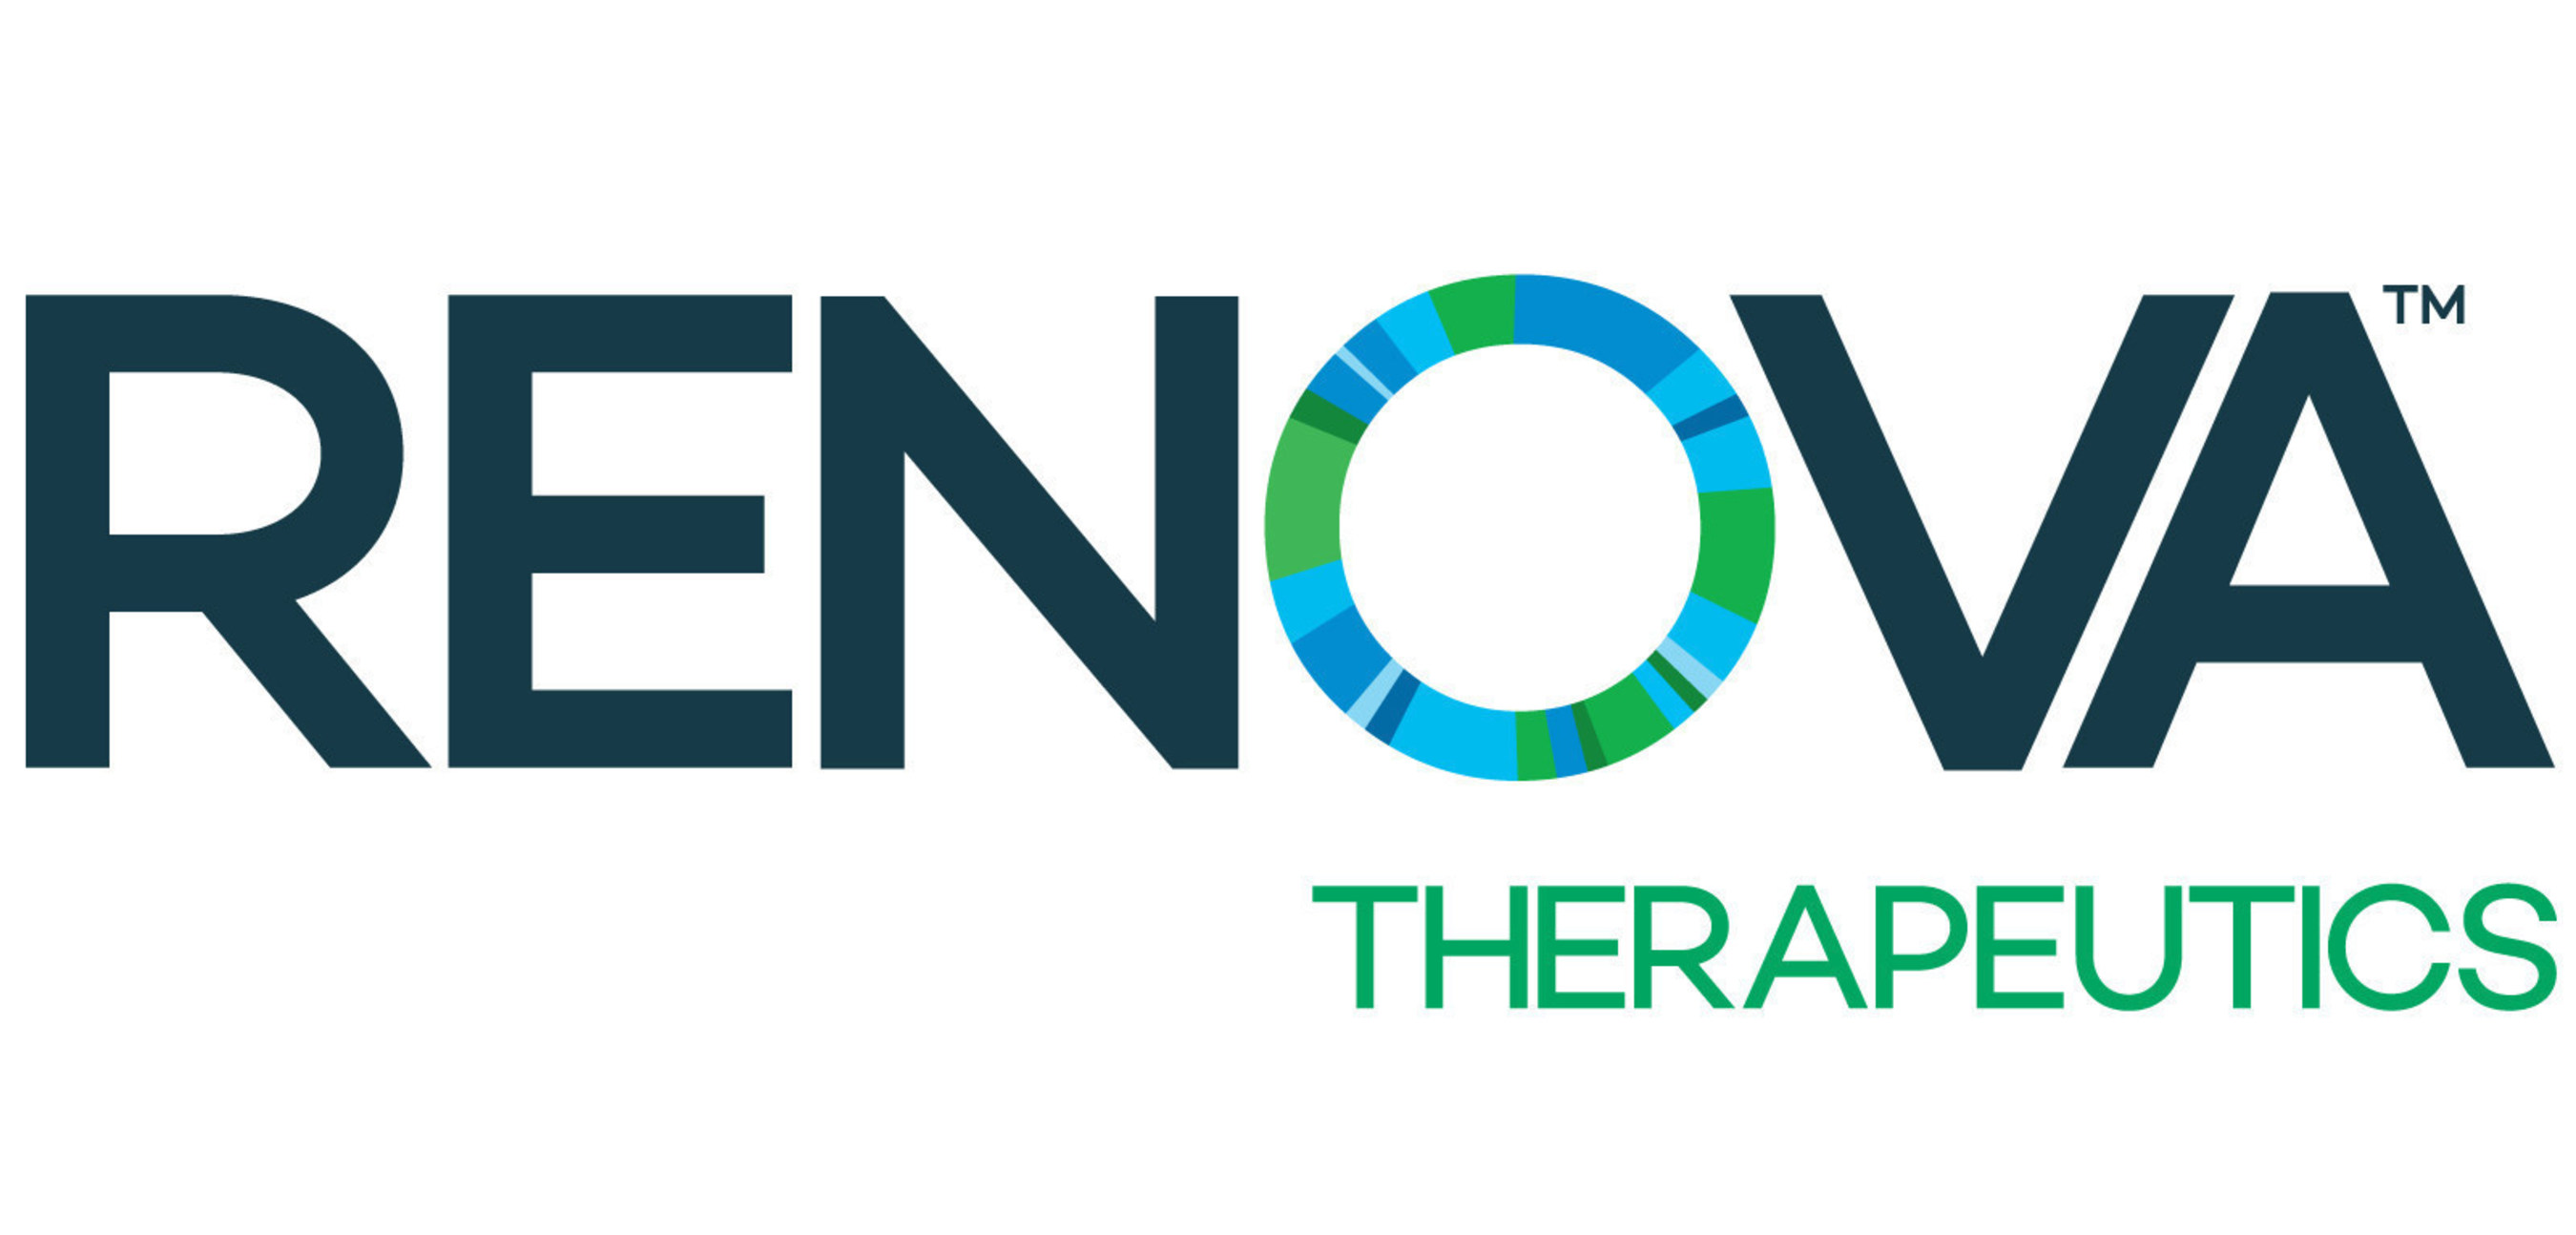 Renova Therapeutics is a San Diego-based biopharmaceutical company developing gene therapy treatments for ...